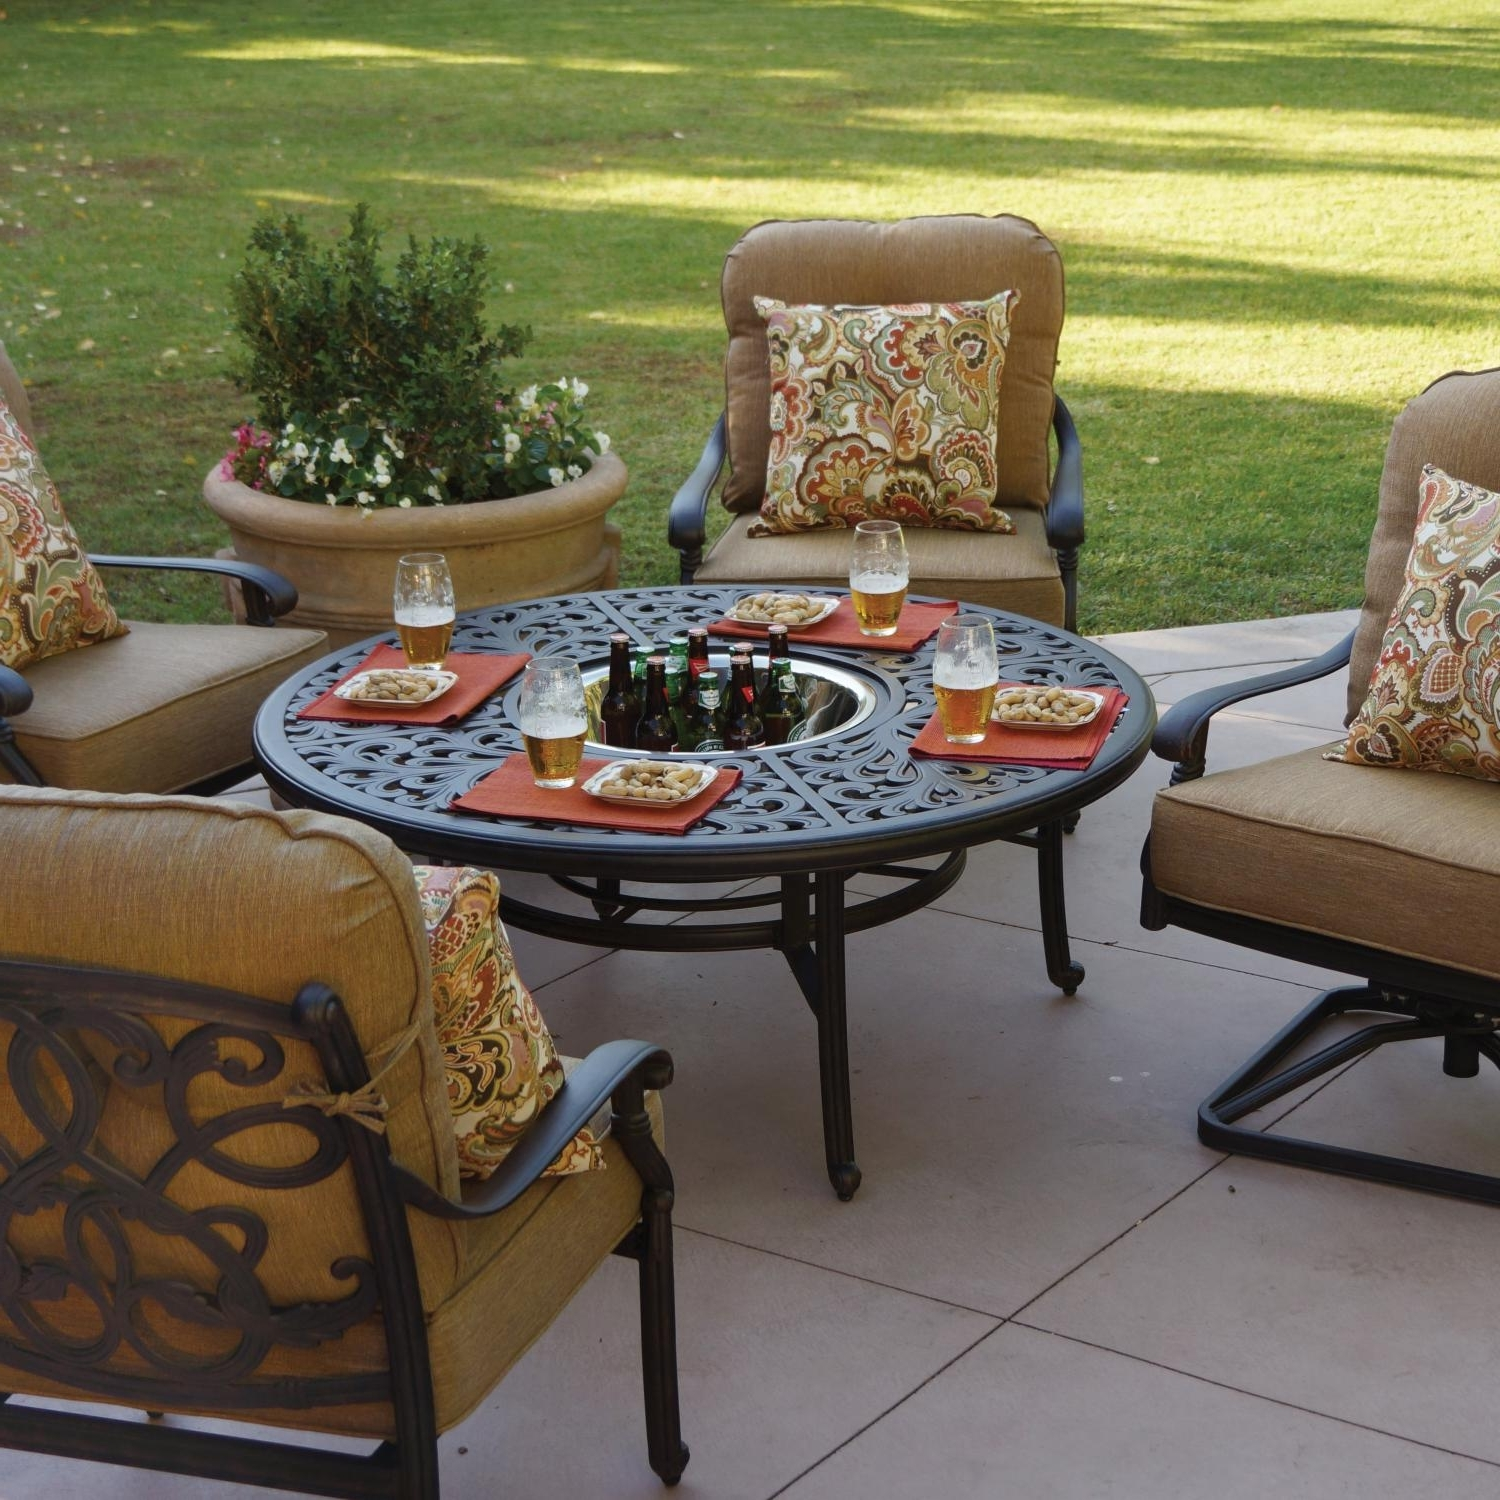 Displaying Gallery Of Patio Conversation Sets With Fire Pit View 17